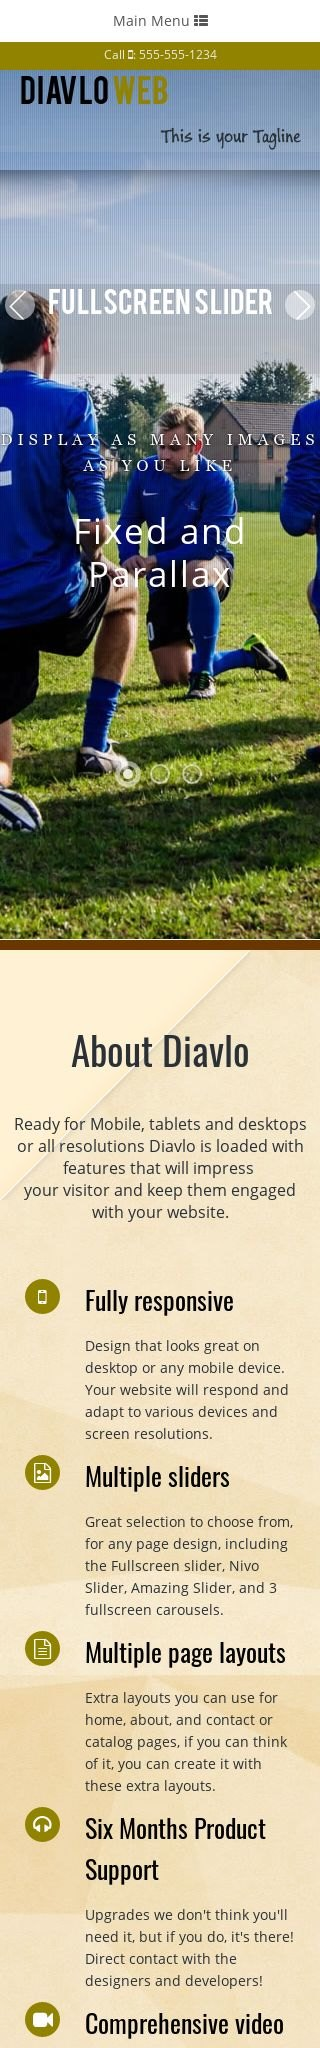 Mobile: Soccer Dreamweaver Template